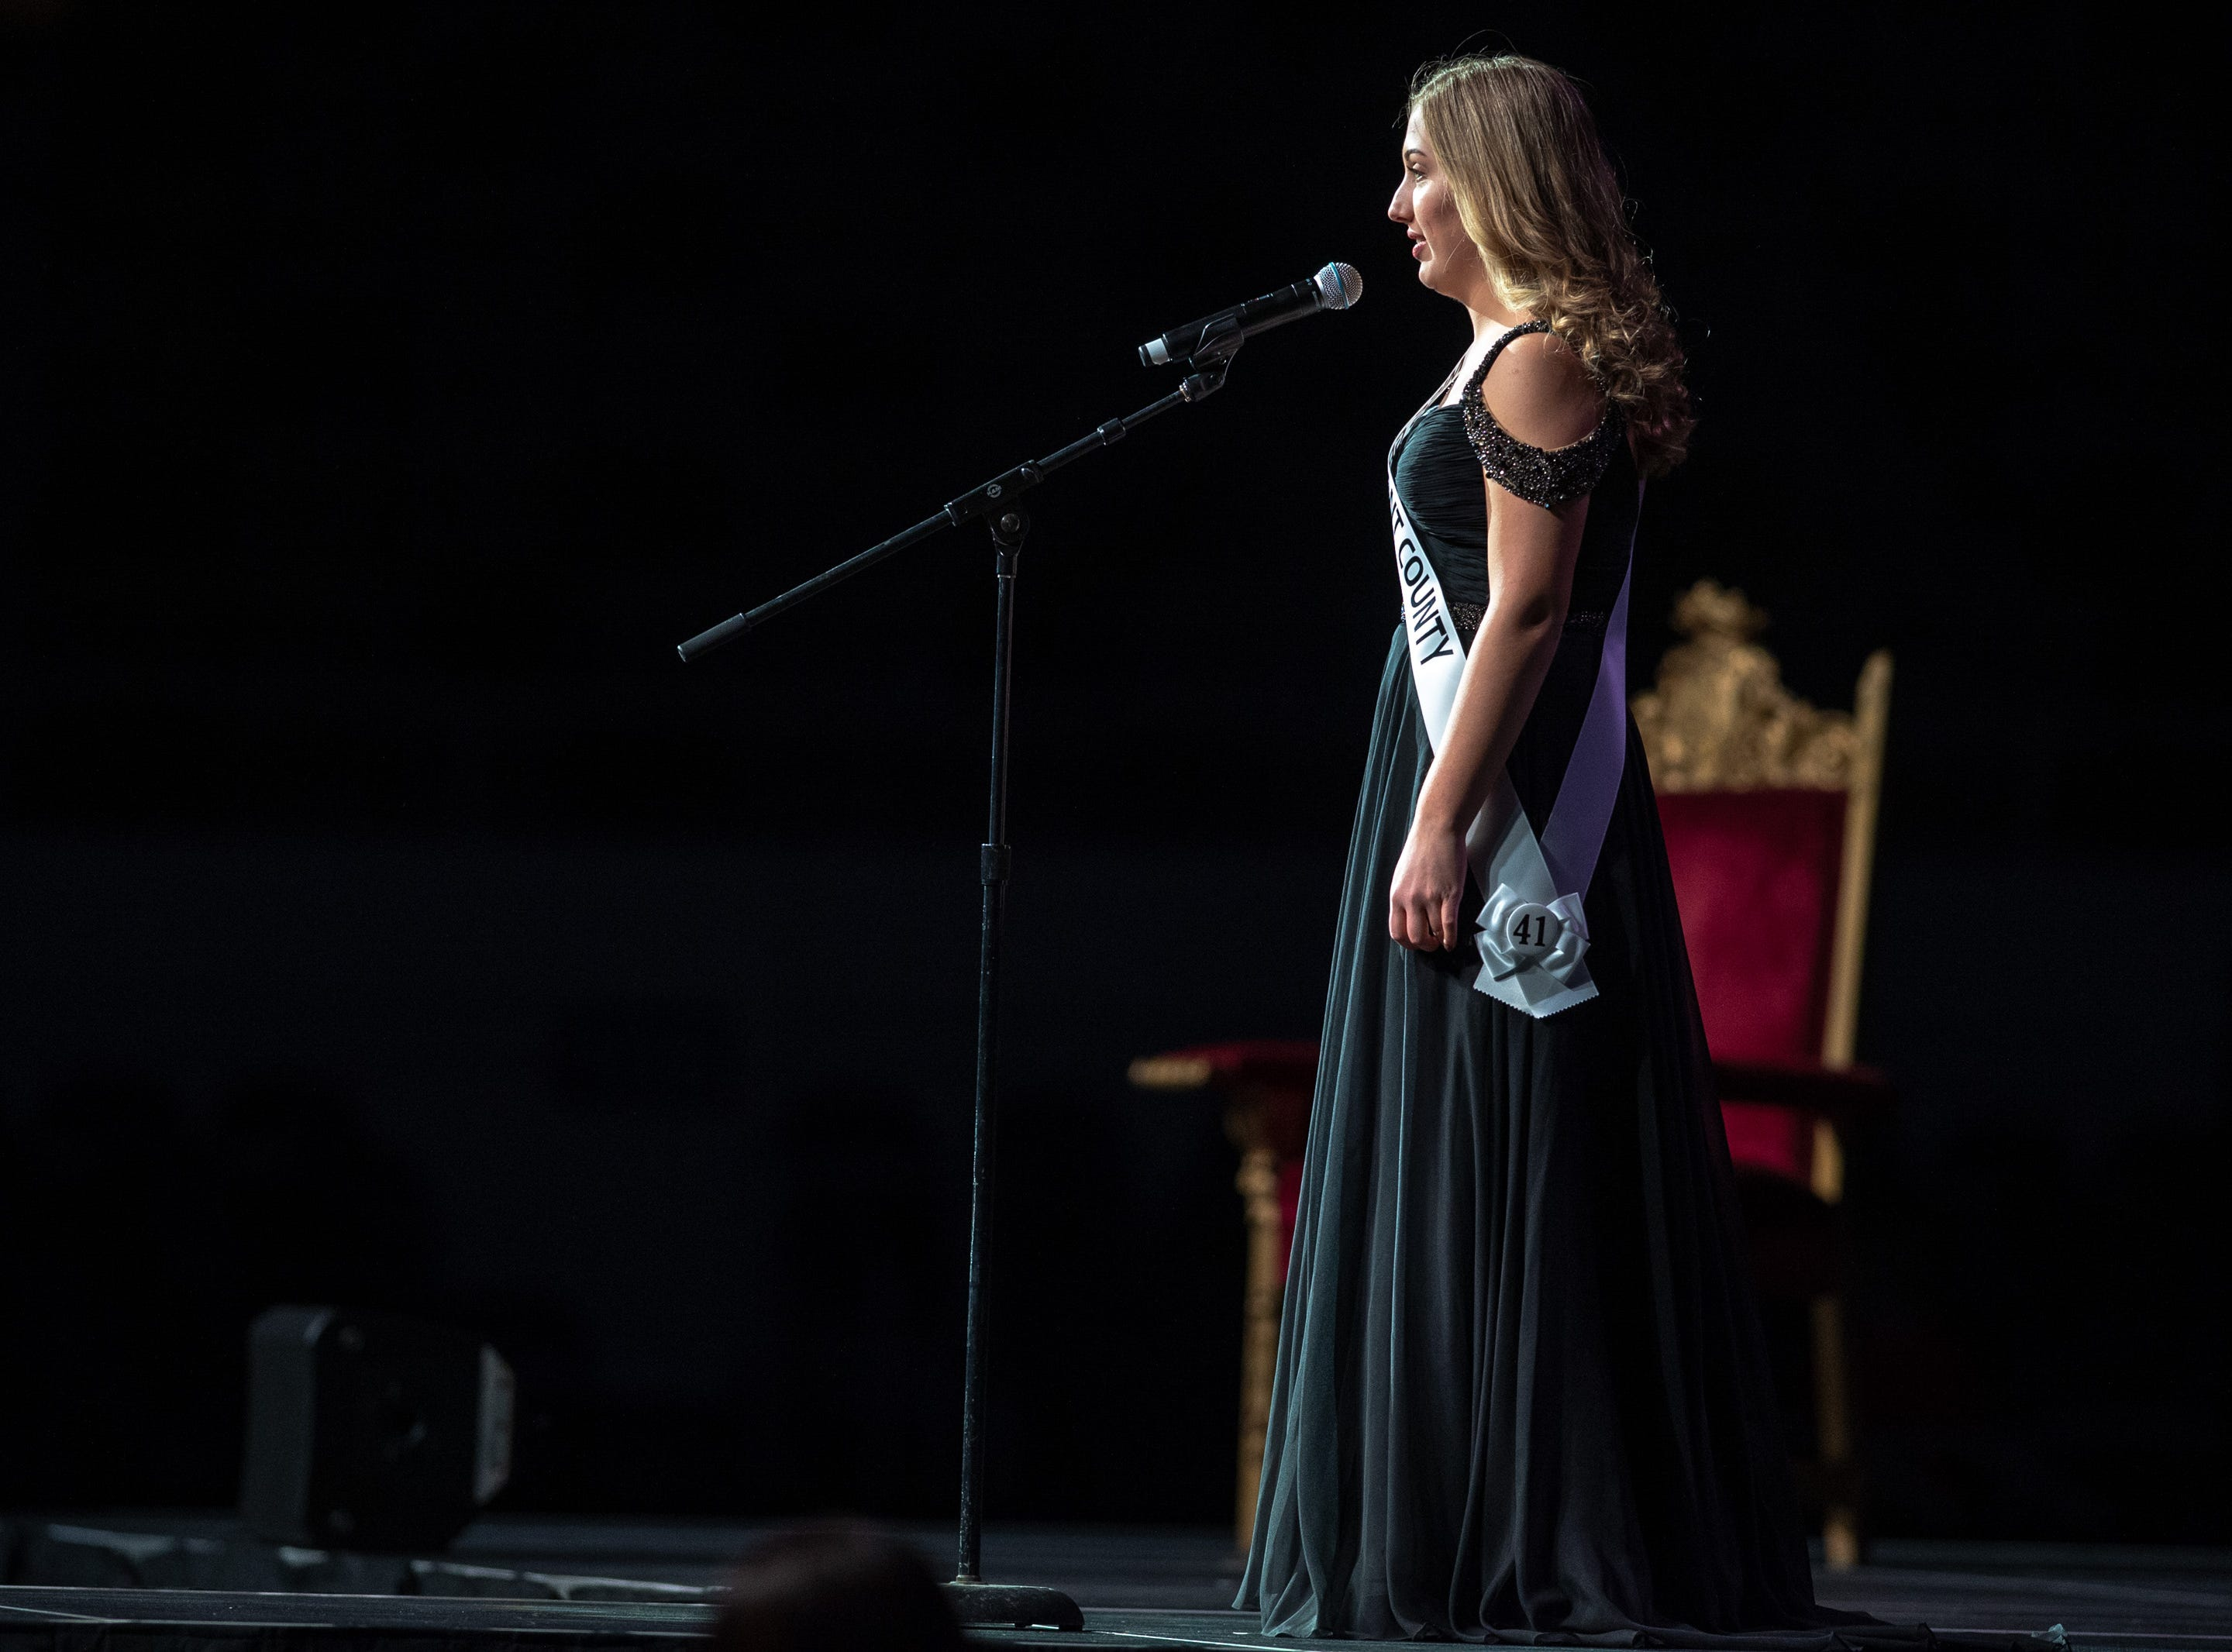 Miss Grant County, Victoria Templin, introduces herself during the 61st Indiana State Fair Queen Pageant at the Indiana State Fairgrounds in Indianapolis on Sunday, Jan. 6, 2019.